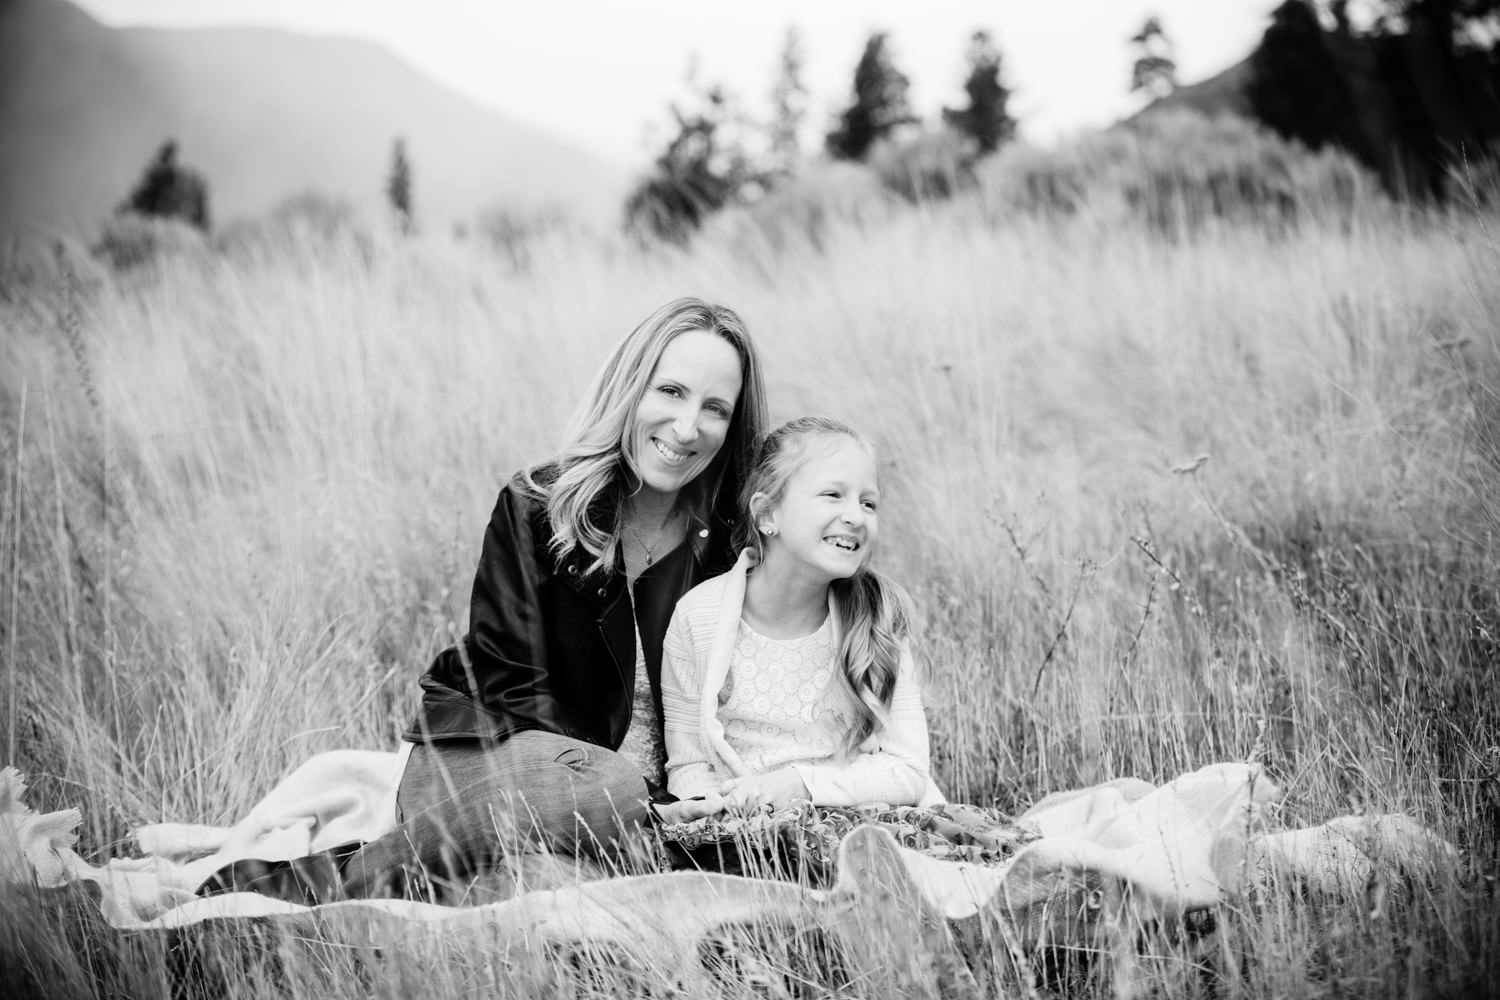 knox-mountain-family-photos-knox-mountain-photographer-knoz mountain-kelowna-bc-knox-moutain-mother-daughter-photography-by-julie-dorge (2 of 27).jpg